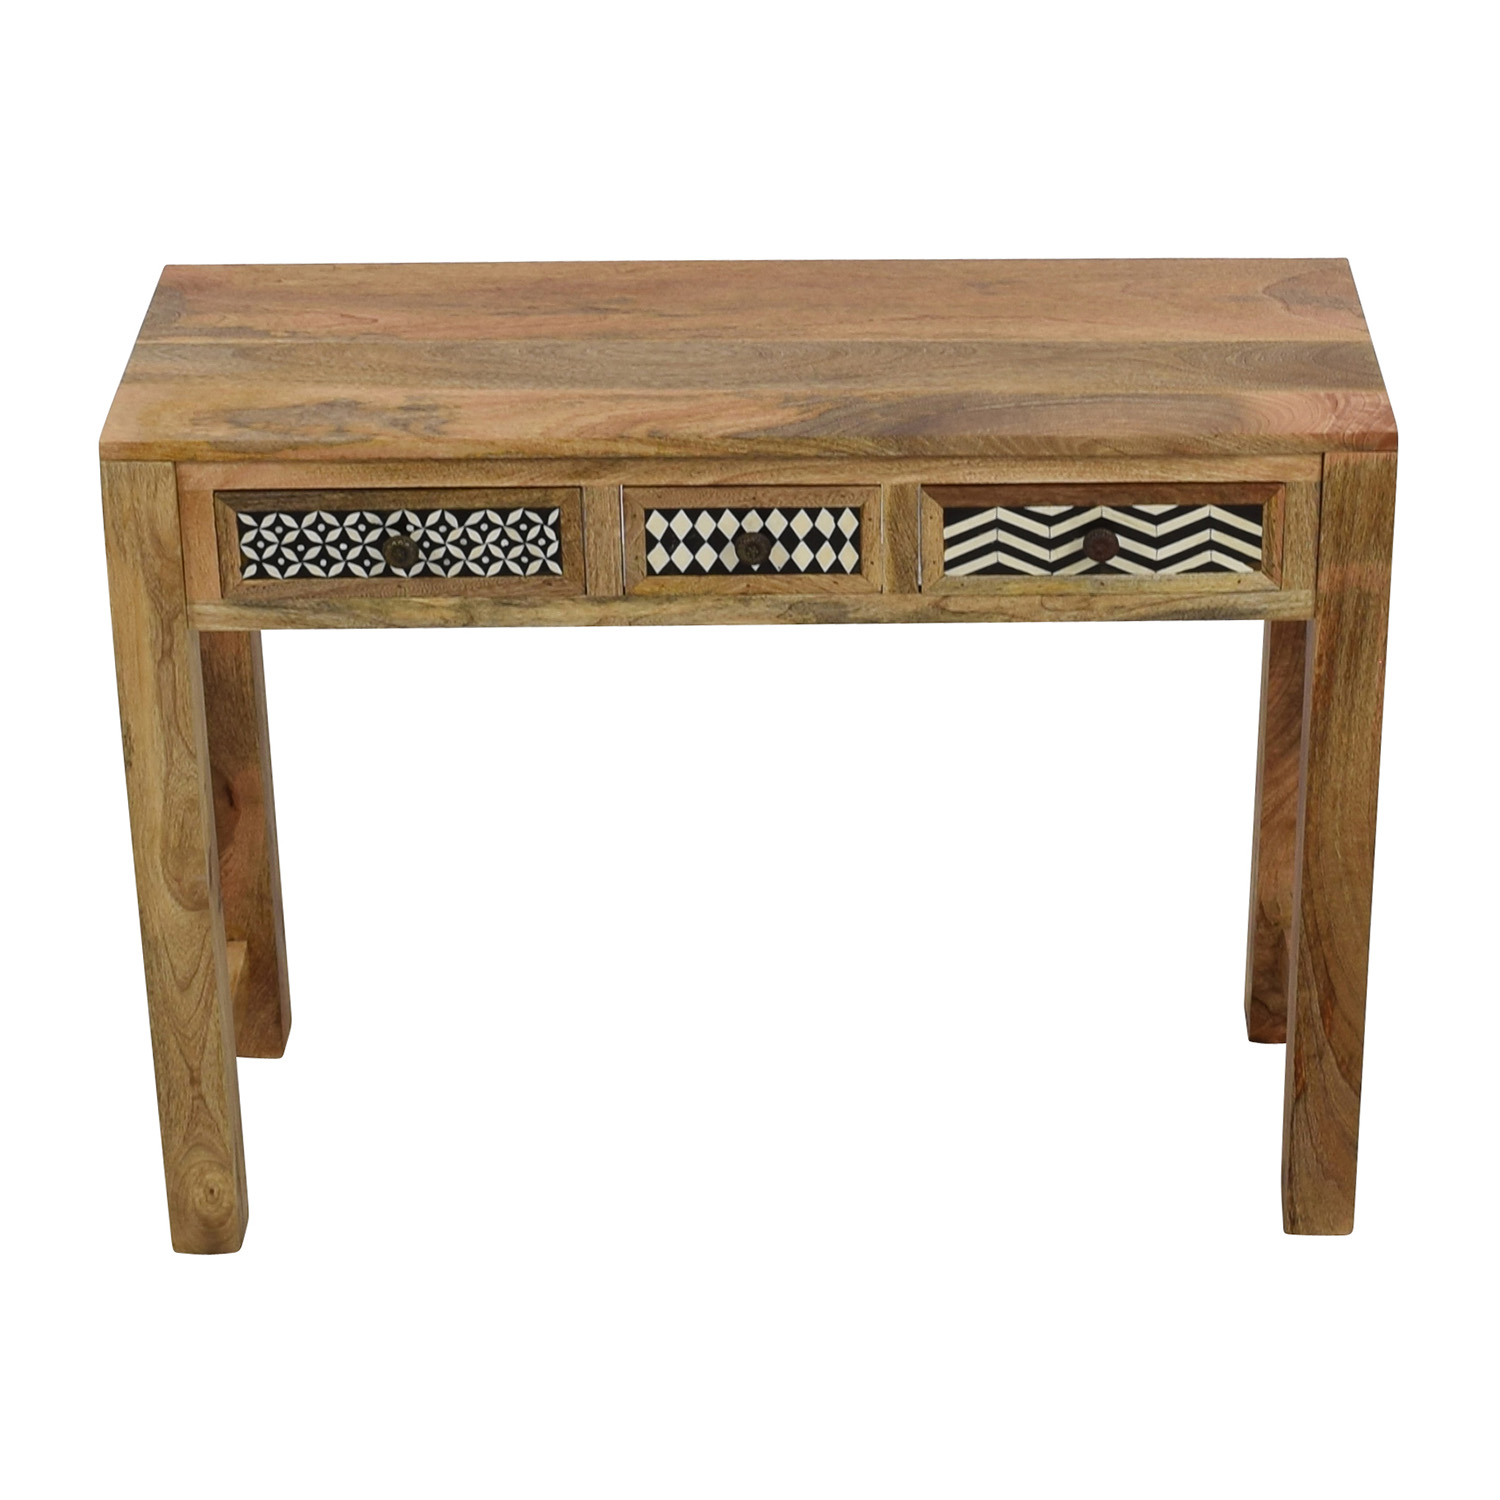 Natural Wood Table with Patterned Drawers price